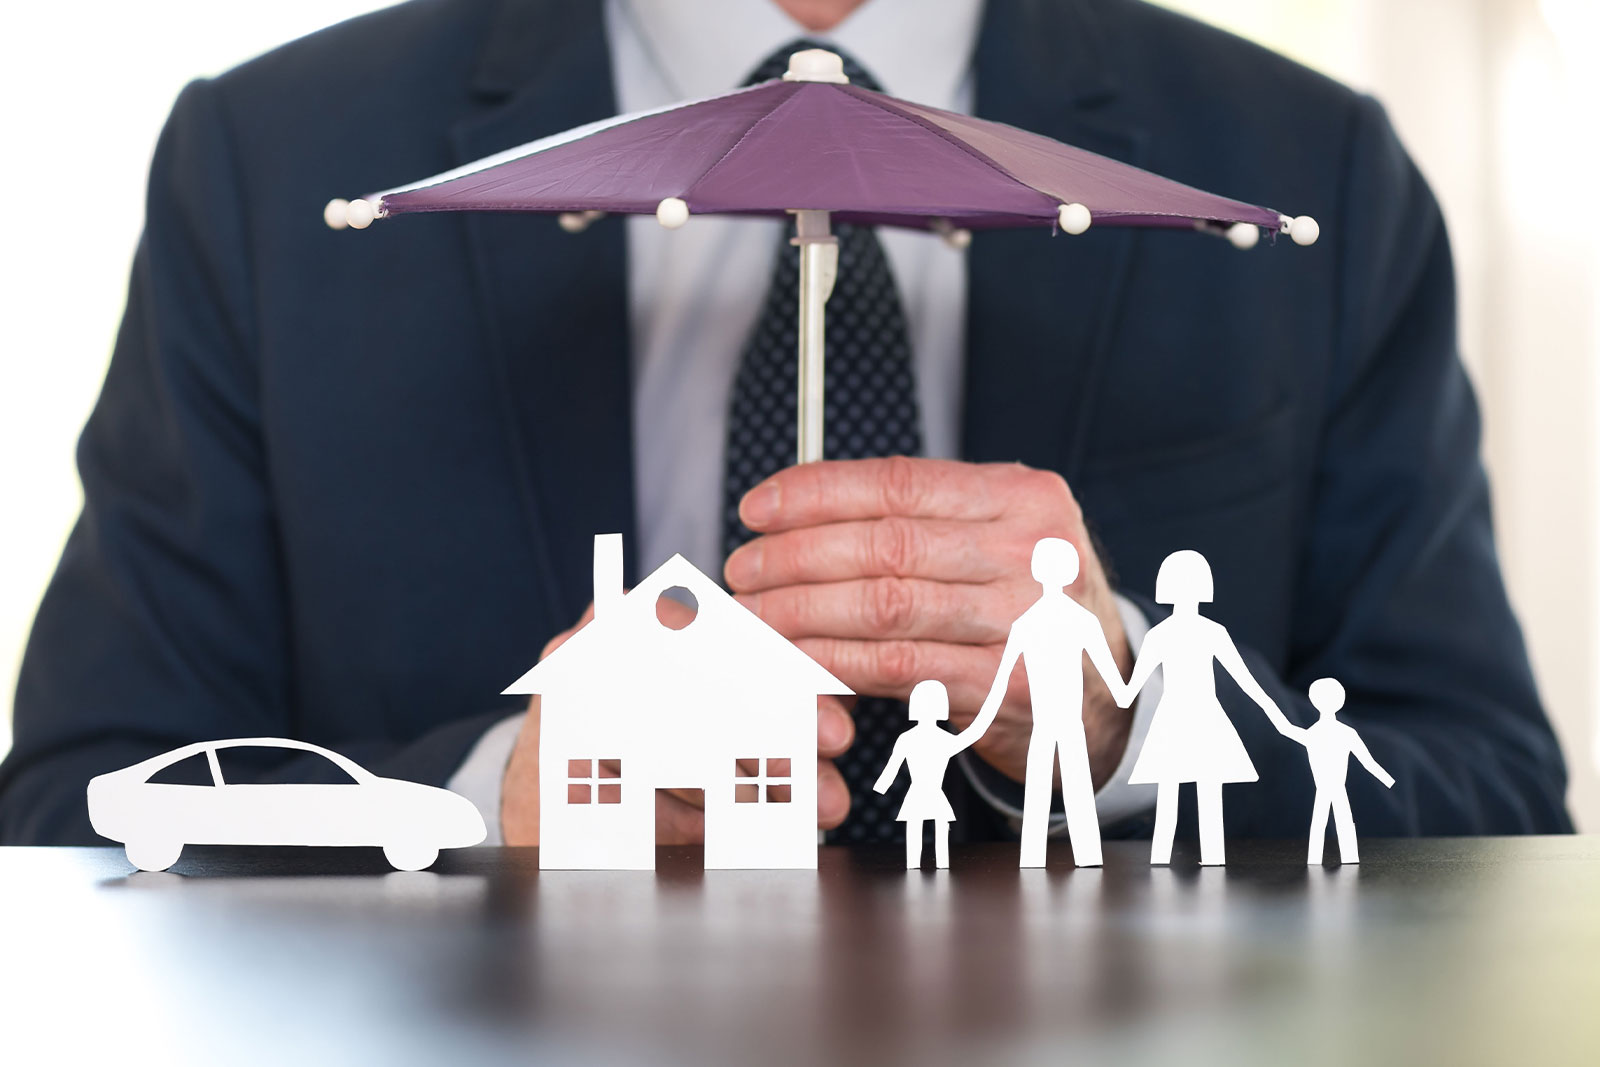 Image of man holding small umbrella over paper cut out a house, care, and family